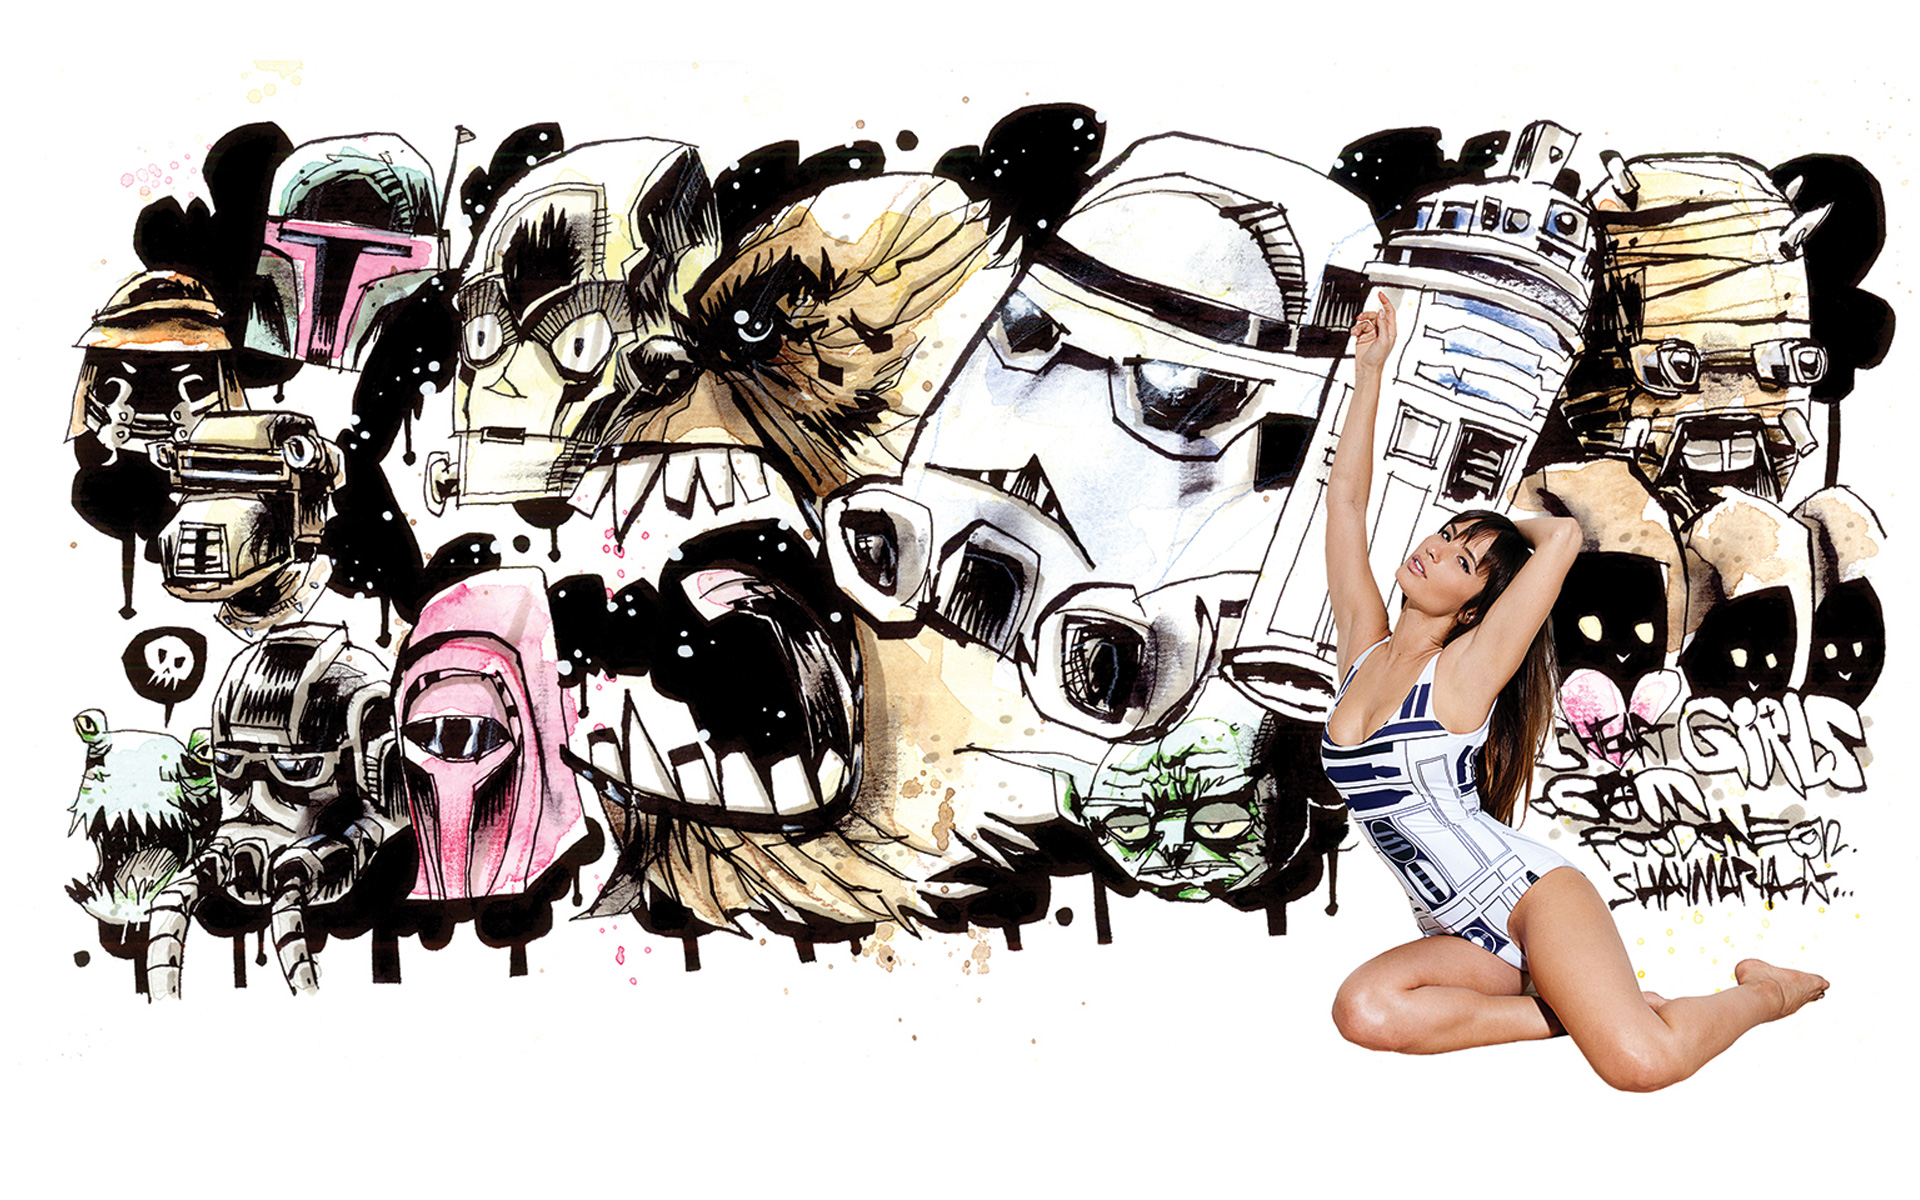 Jim Mahfood ♥s Girls: Shay Maria Wallpapers